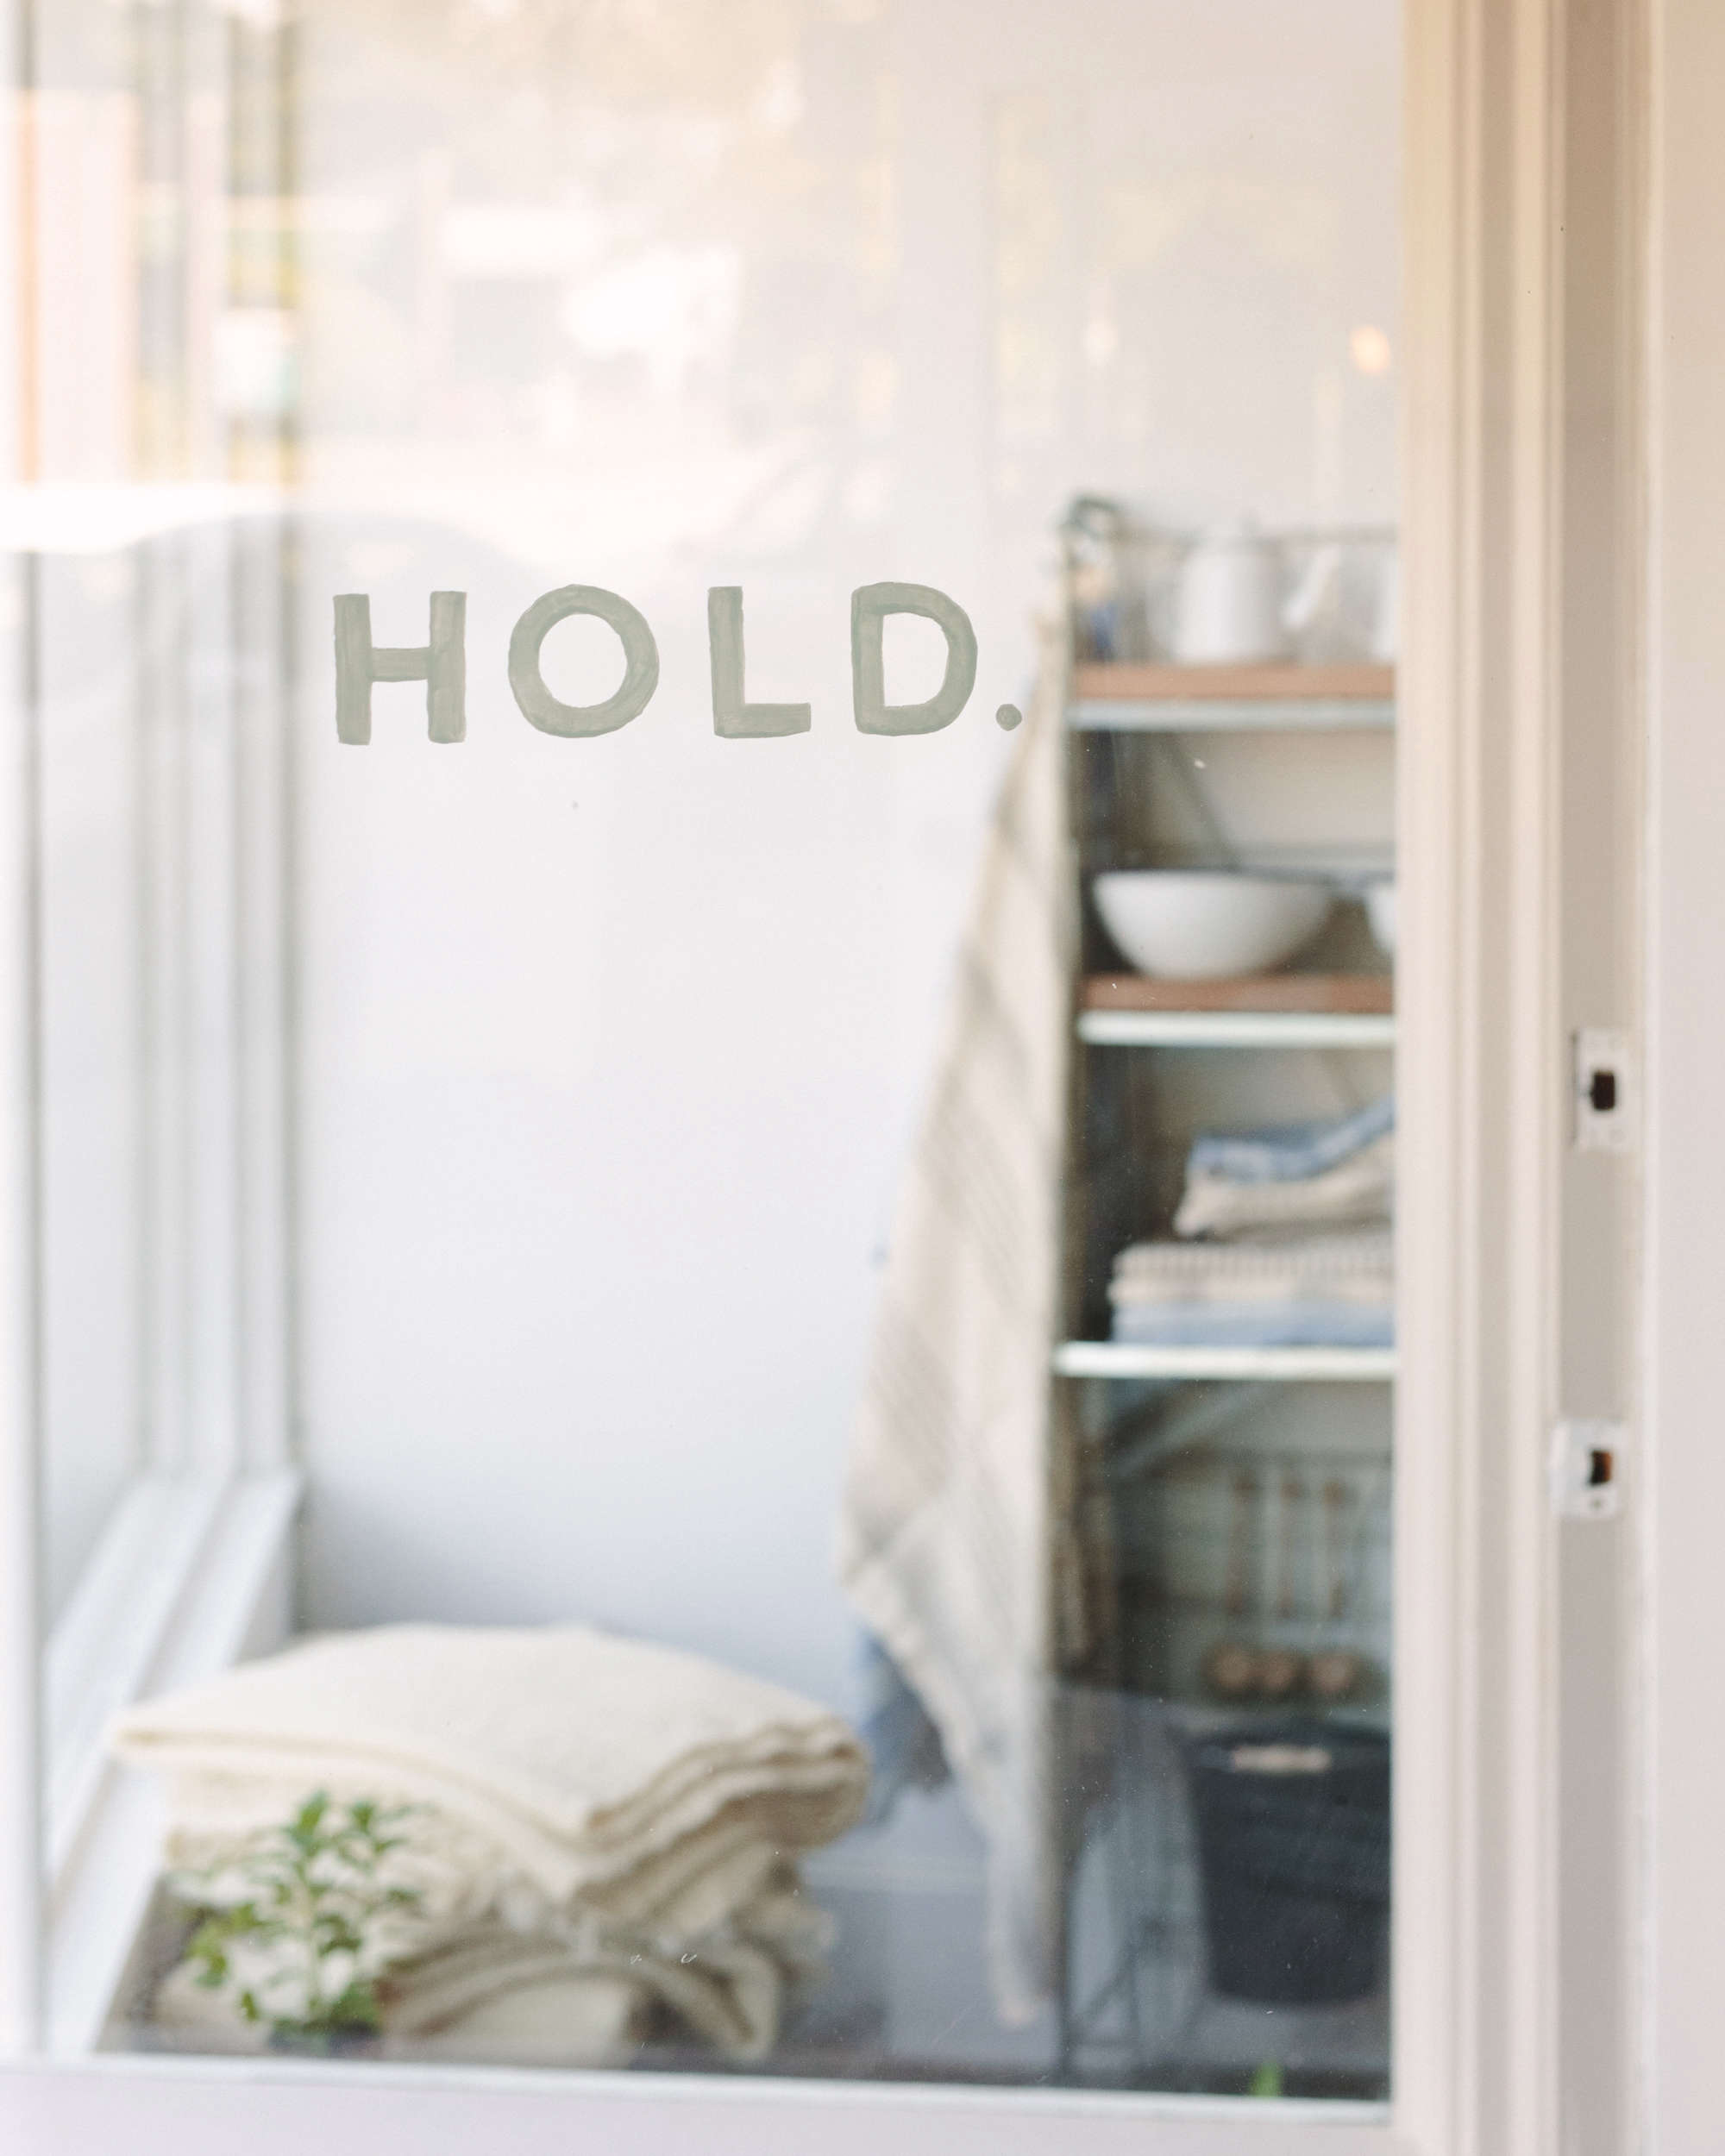 Hold General Store Front Window, Photo by Kelly Brown